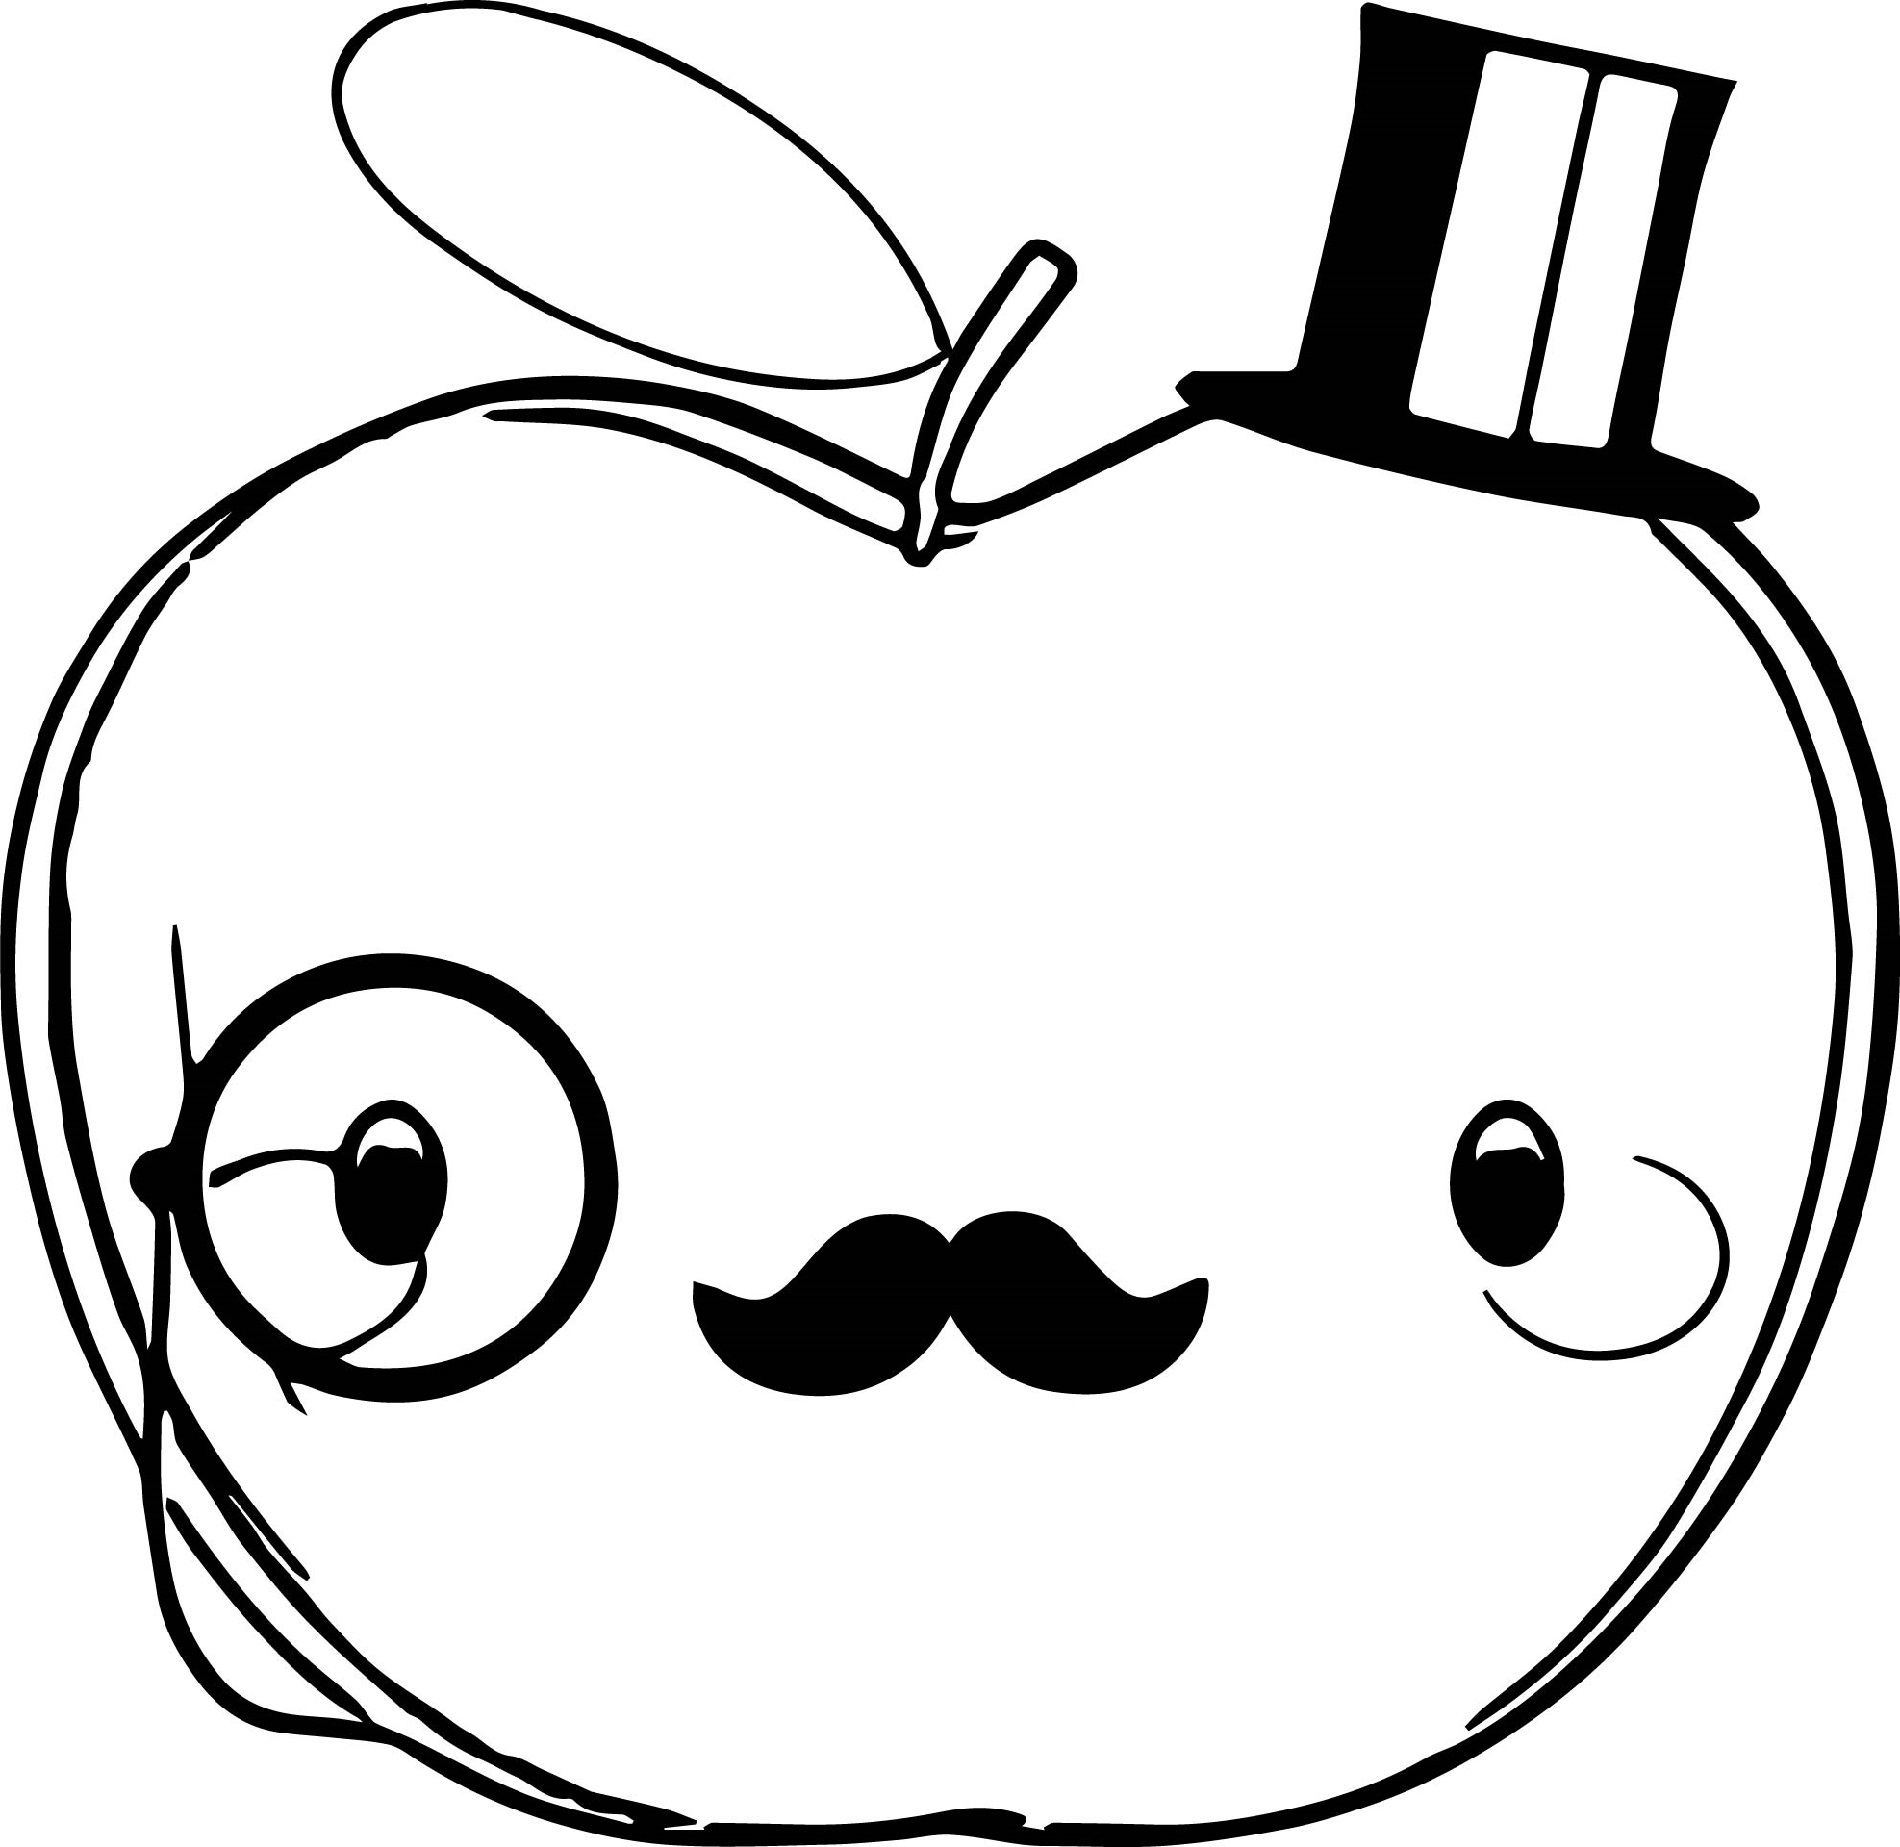 coloring pages apple apple coloring pages the sun flower pages pages apple coloring